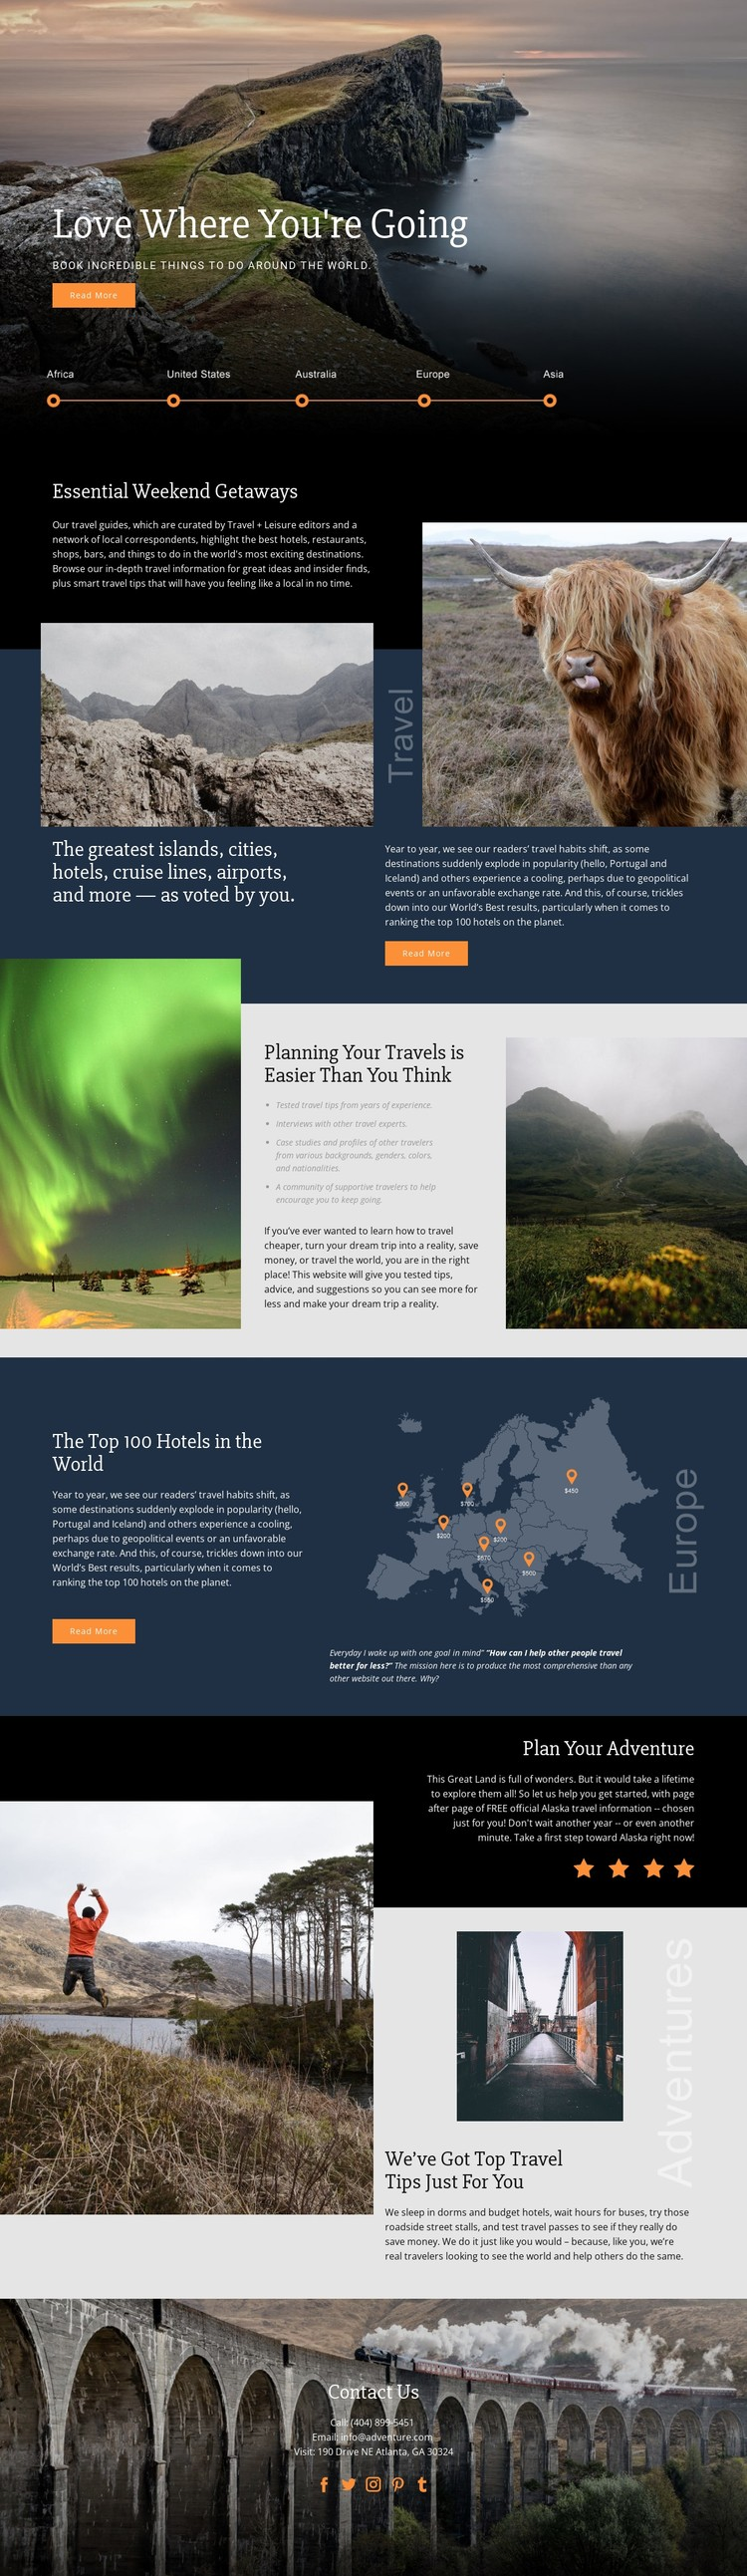 Planning Your Travel CSS Template